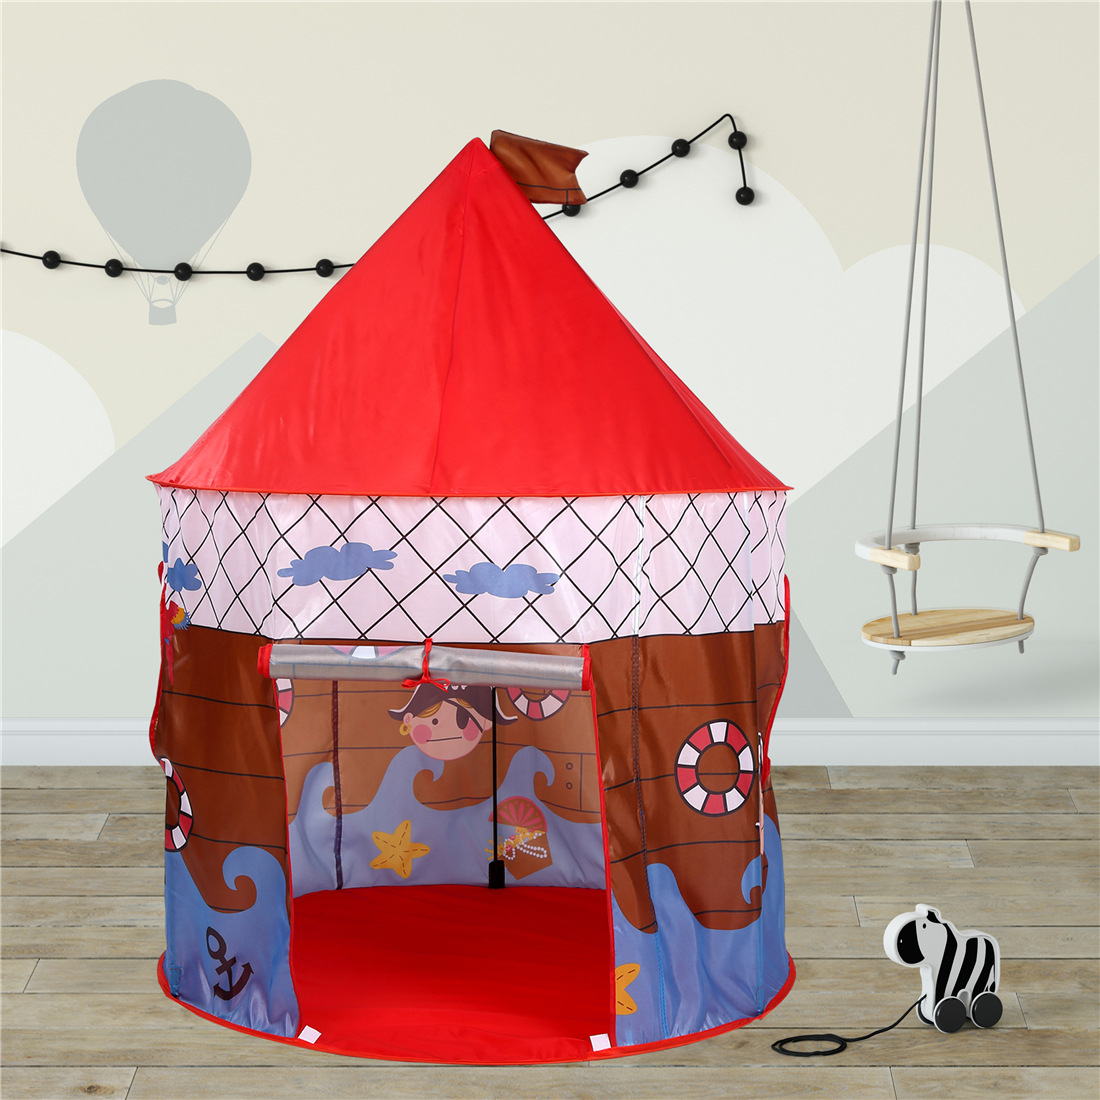 Ozhouzhan Hot Selling KID'S Tent South Korea Variety Cartoon Pirate Wave Boat Anchor Oceans Wave Ball Pool Mongolian Yurt